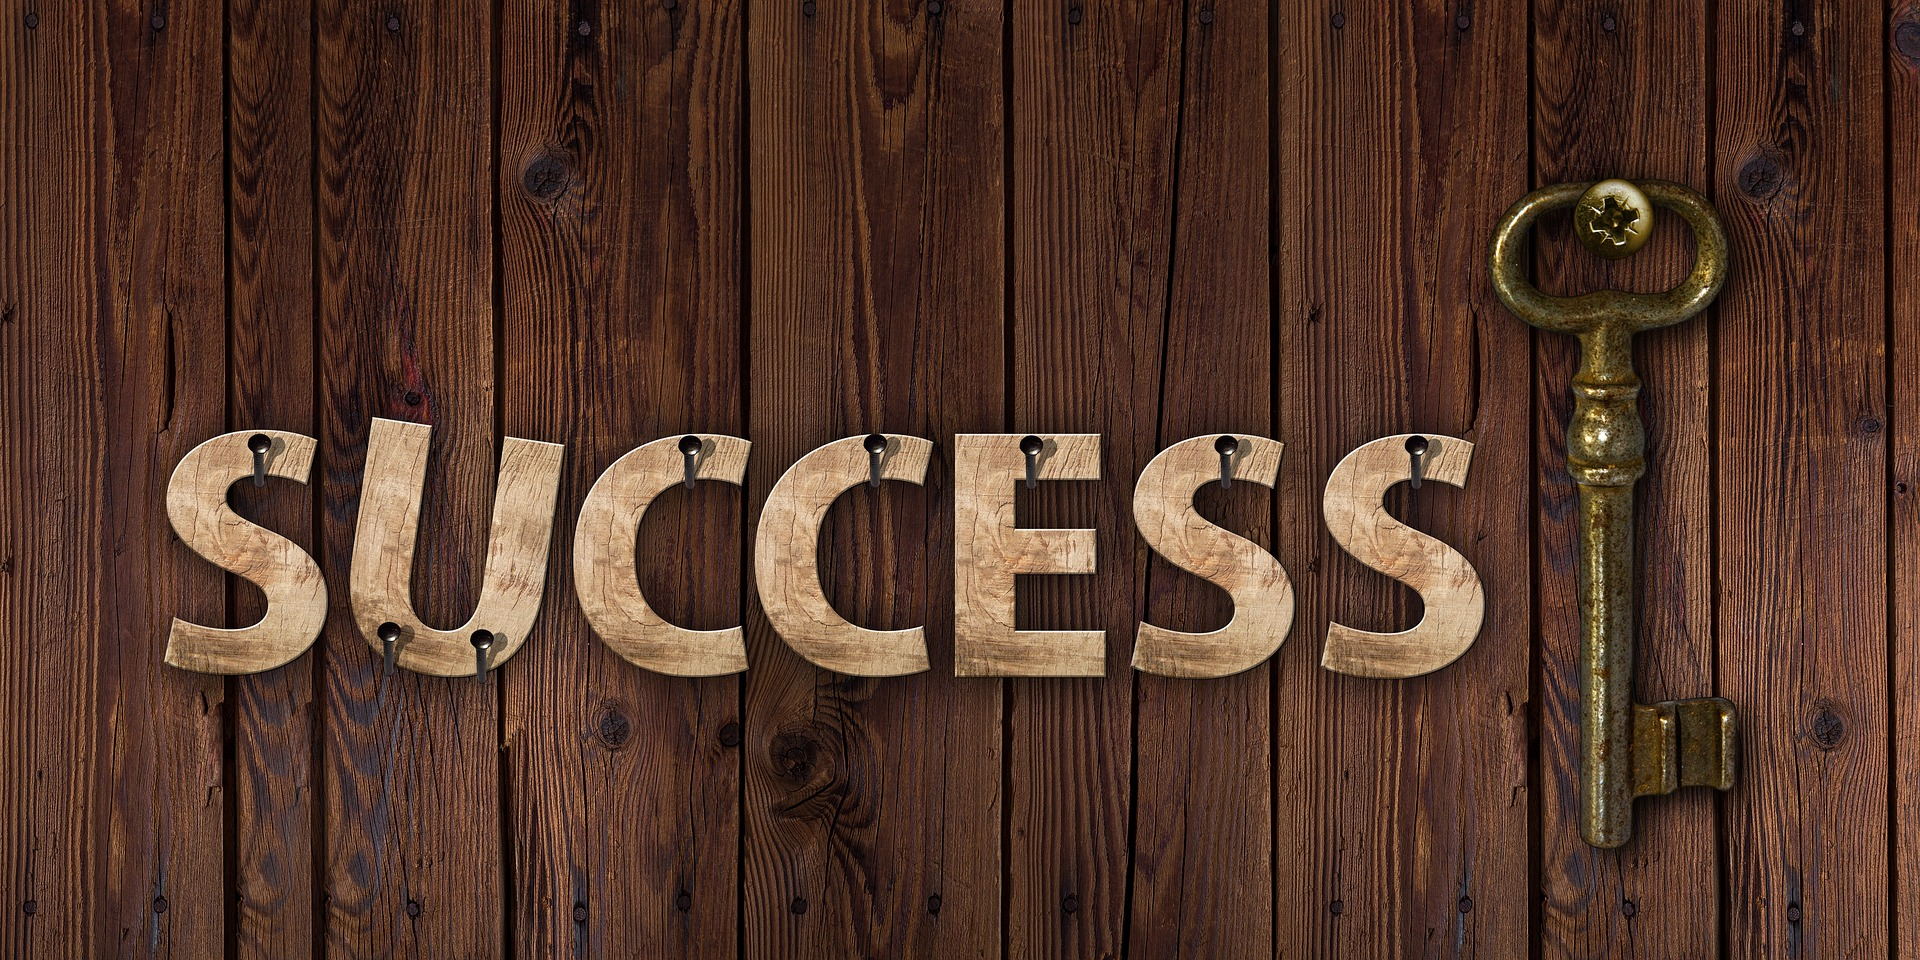 Success written out with a key on planks of wood